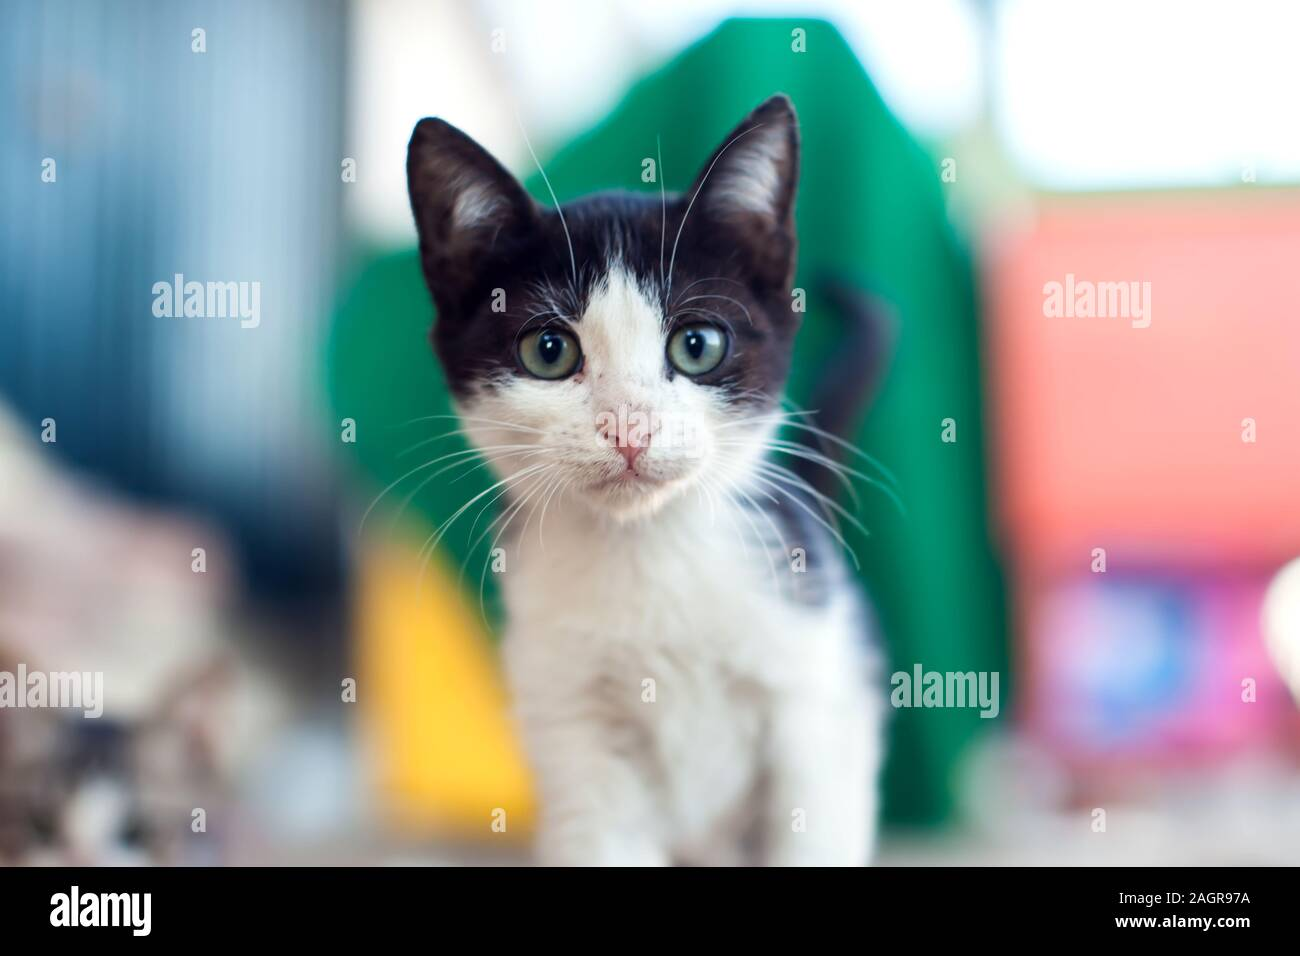 Homeless black and white kitten looking at camera on the street. Animal protection concept Stock Photo